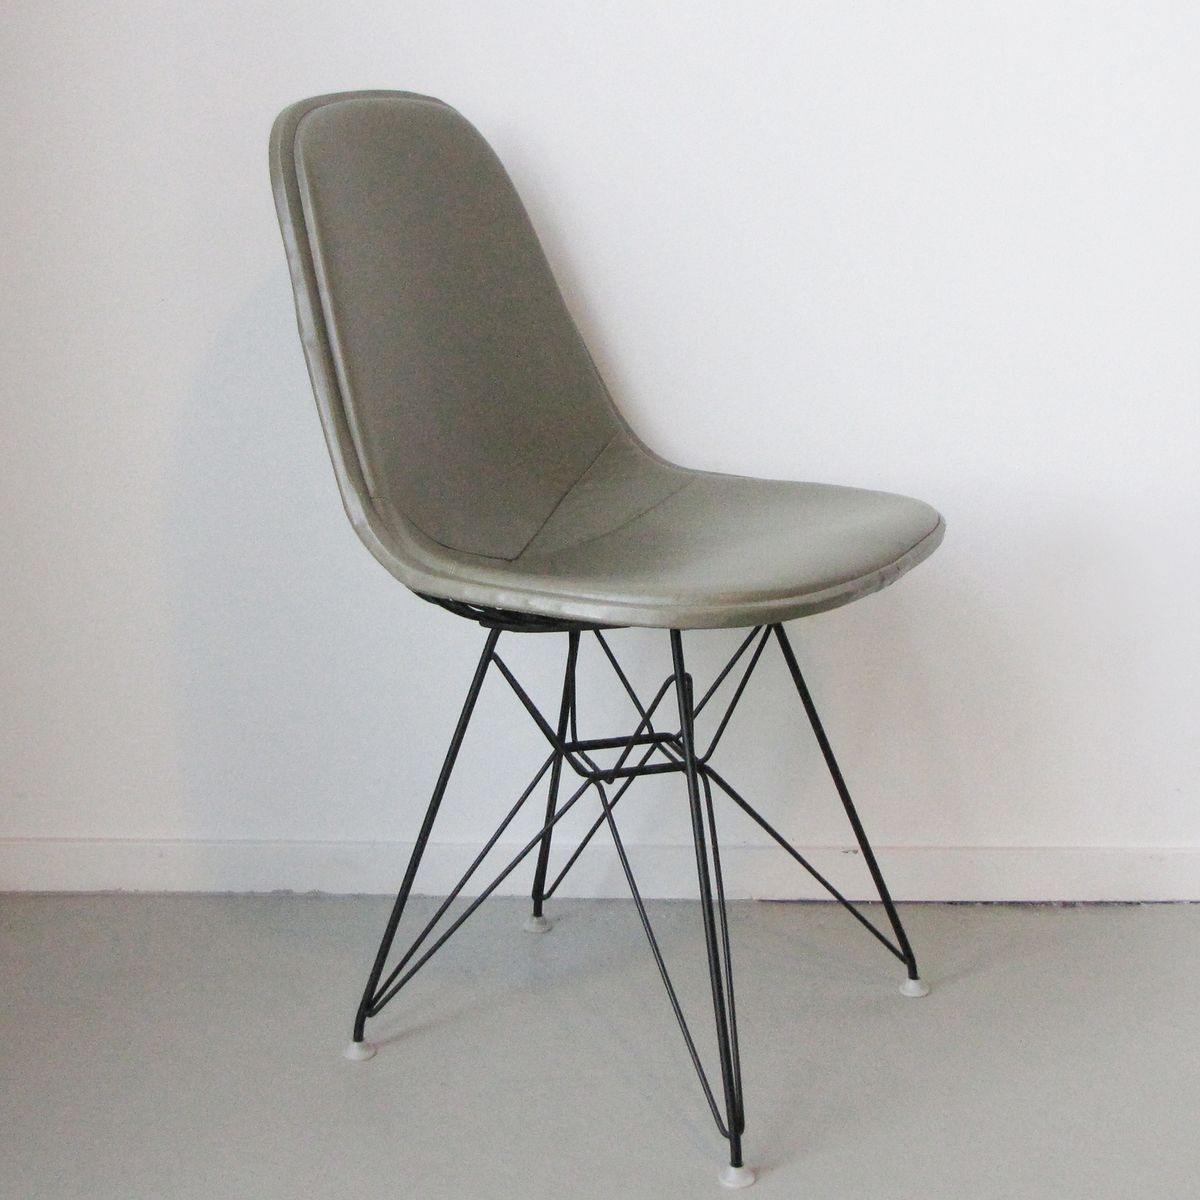 Dkr 1 chair by charles ray eames for herman miller for sale at pamono - Herman miller chair eames ...